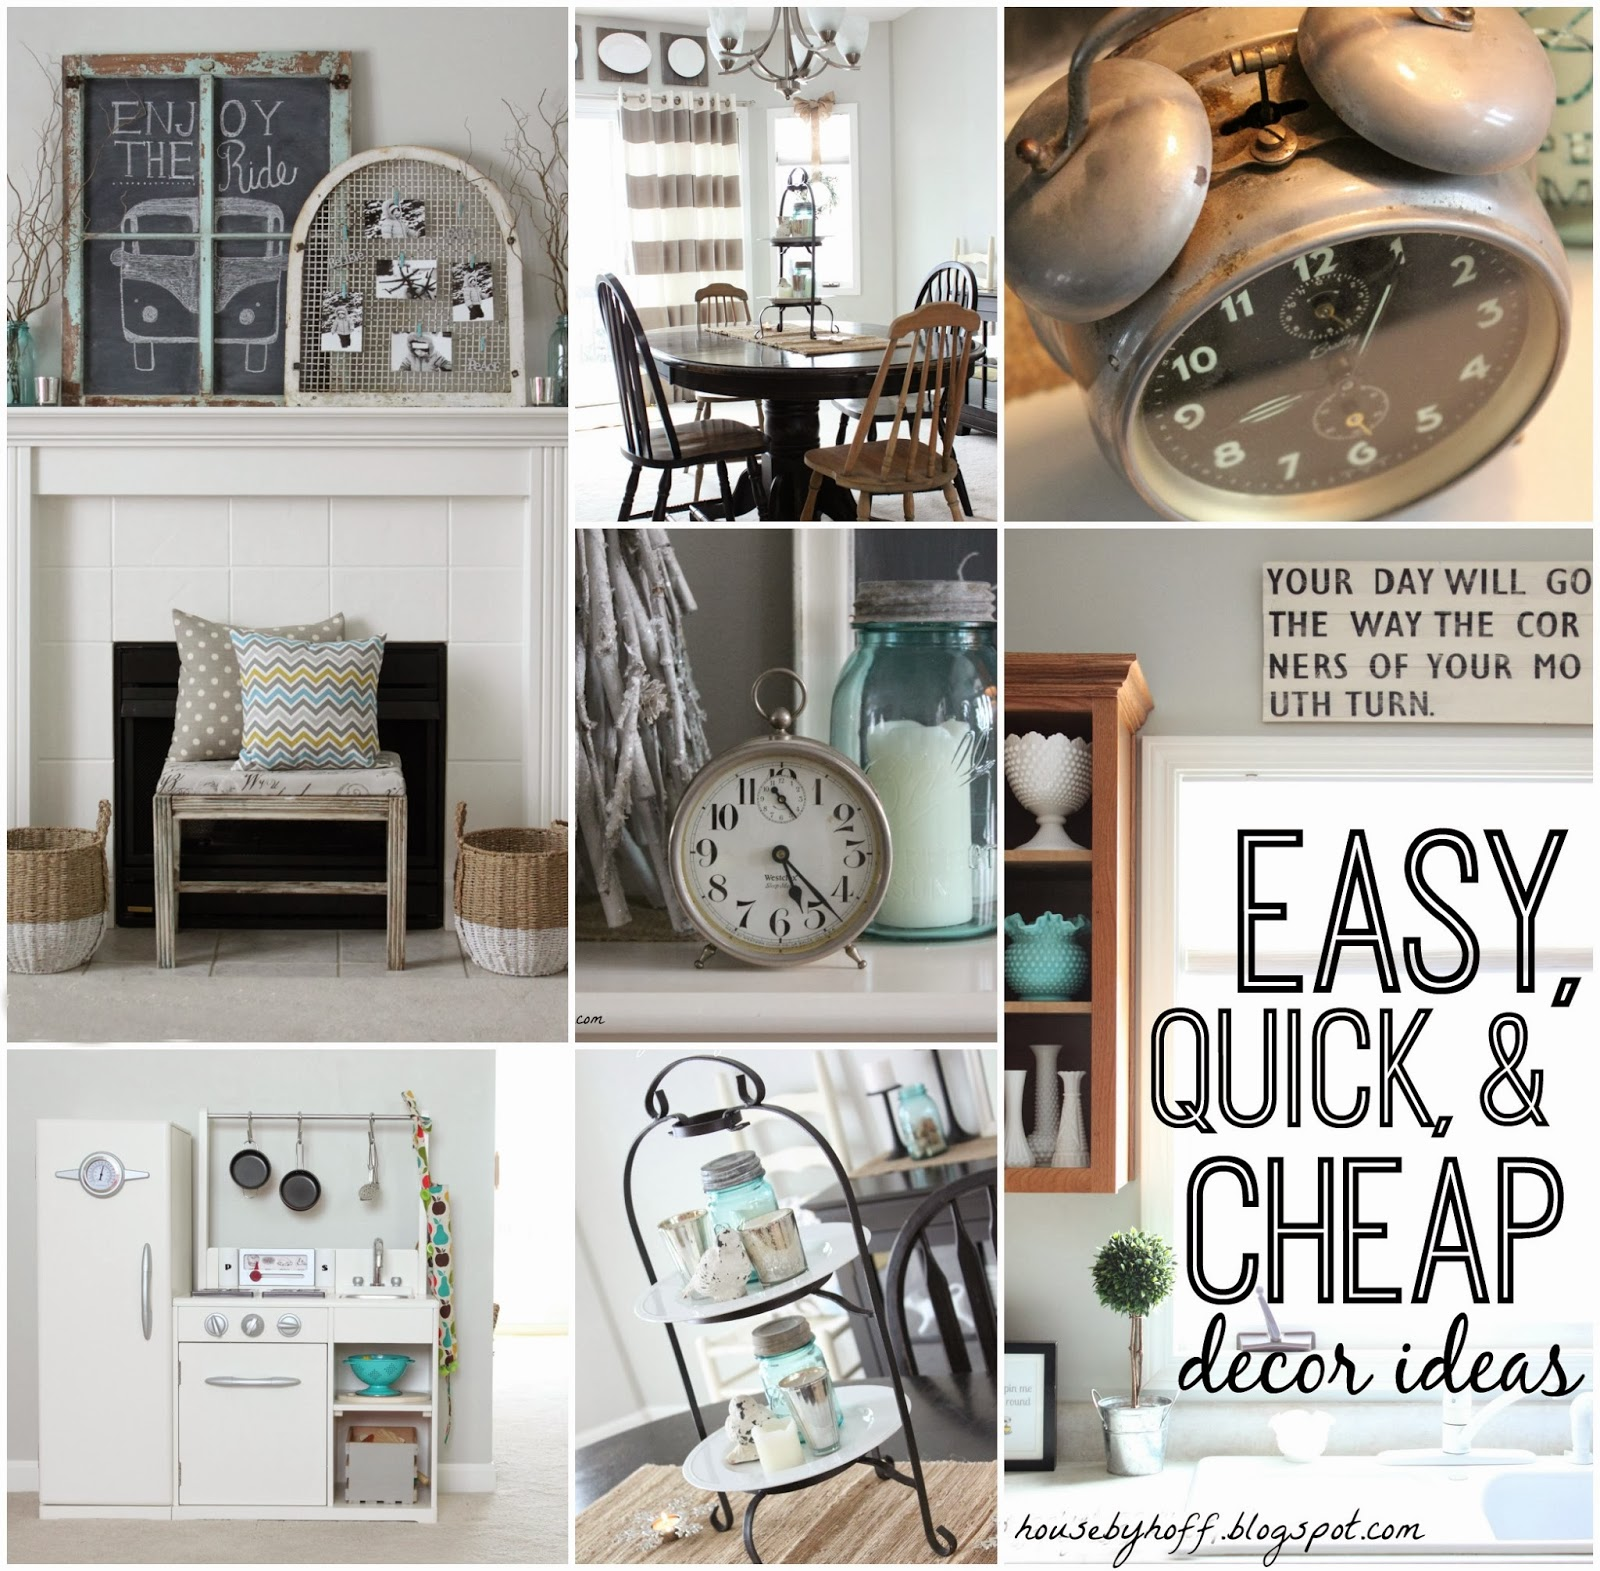 Easy Quick and Cheap Decor Ideas via housebyhoff.com